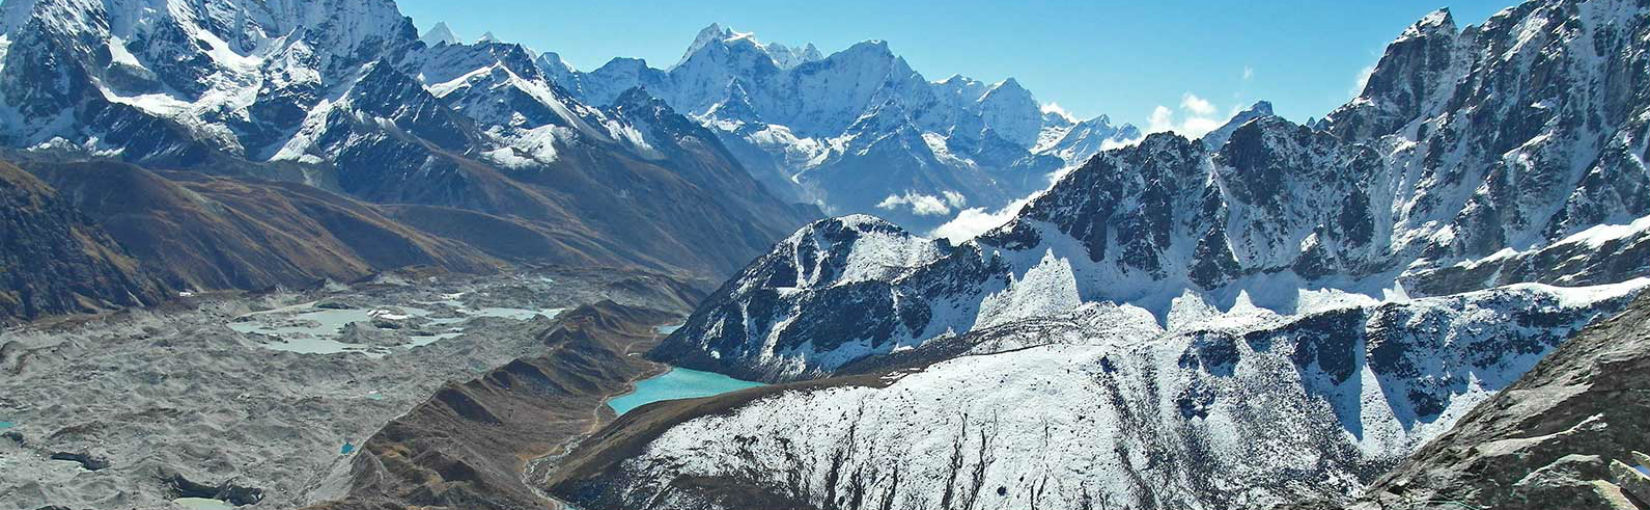 Everest Trekking to explore Gokyo Ri